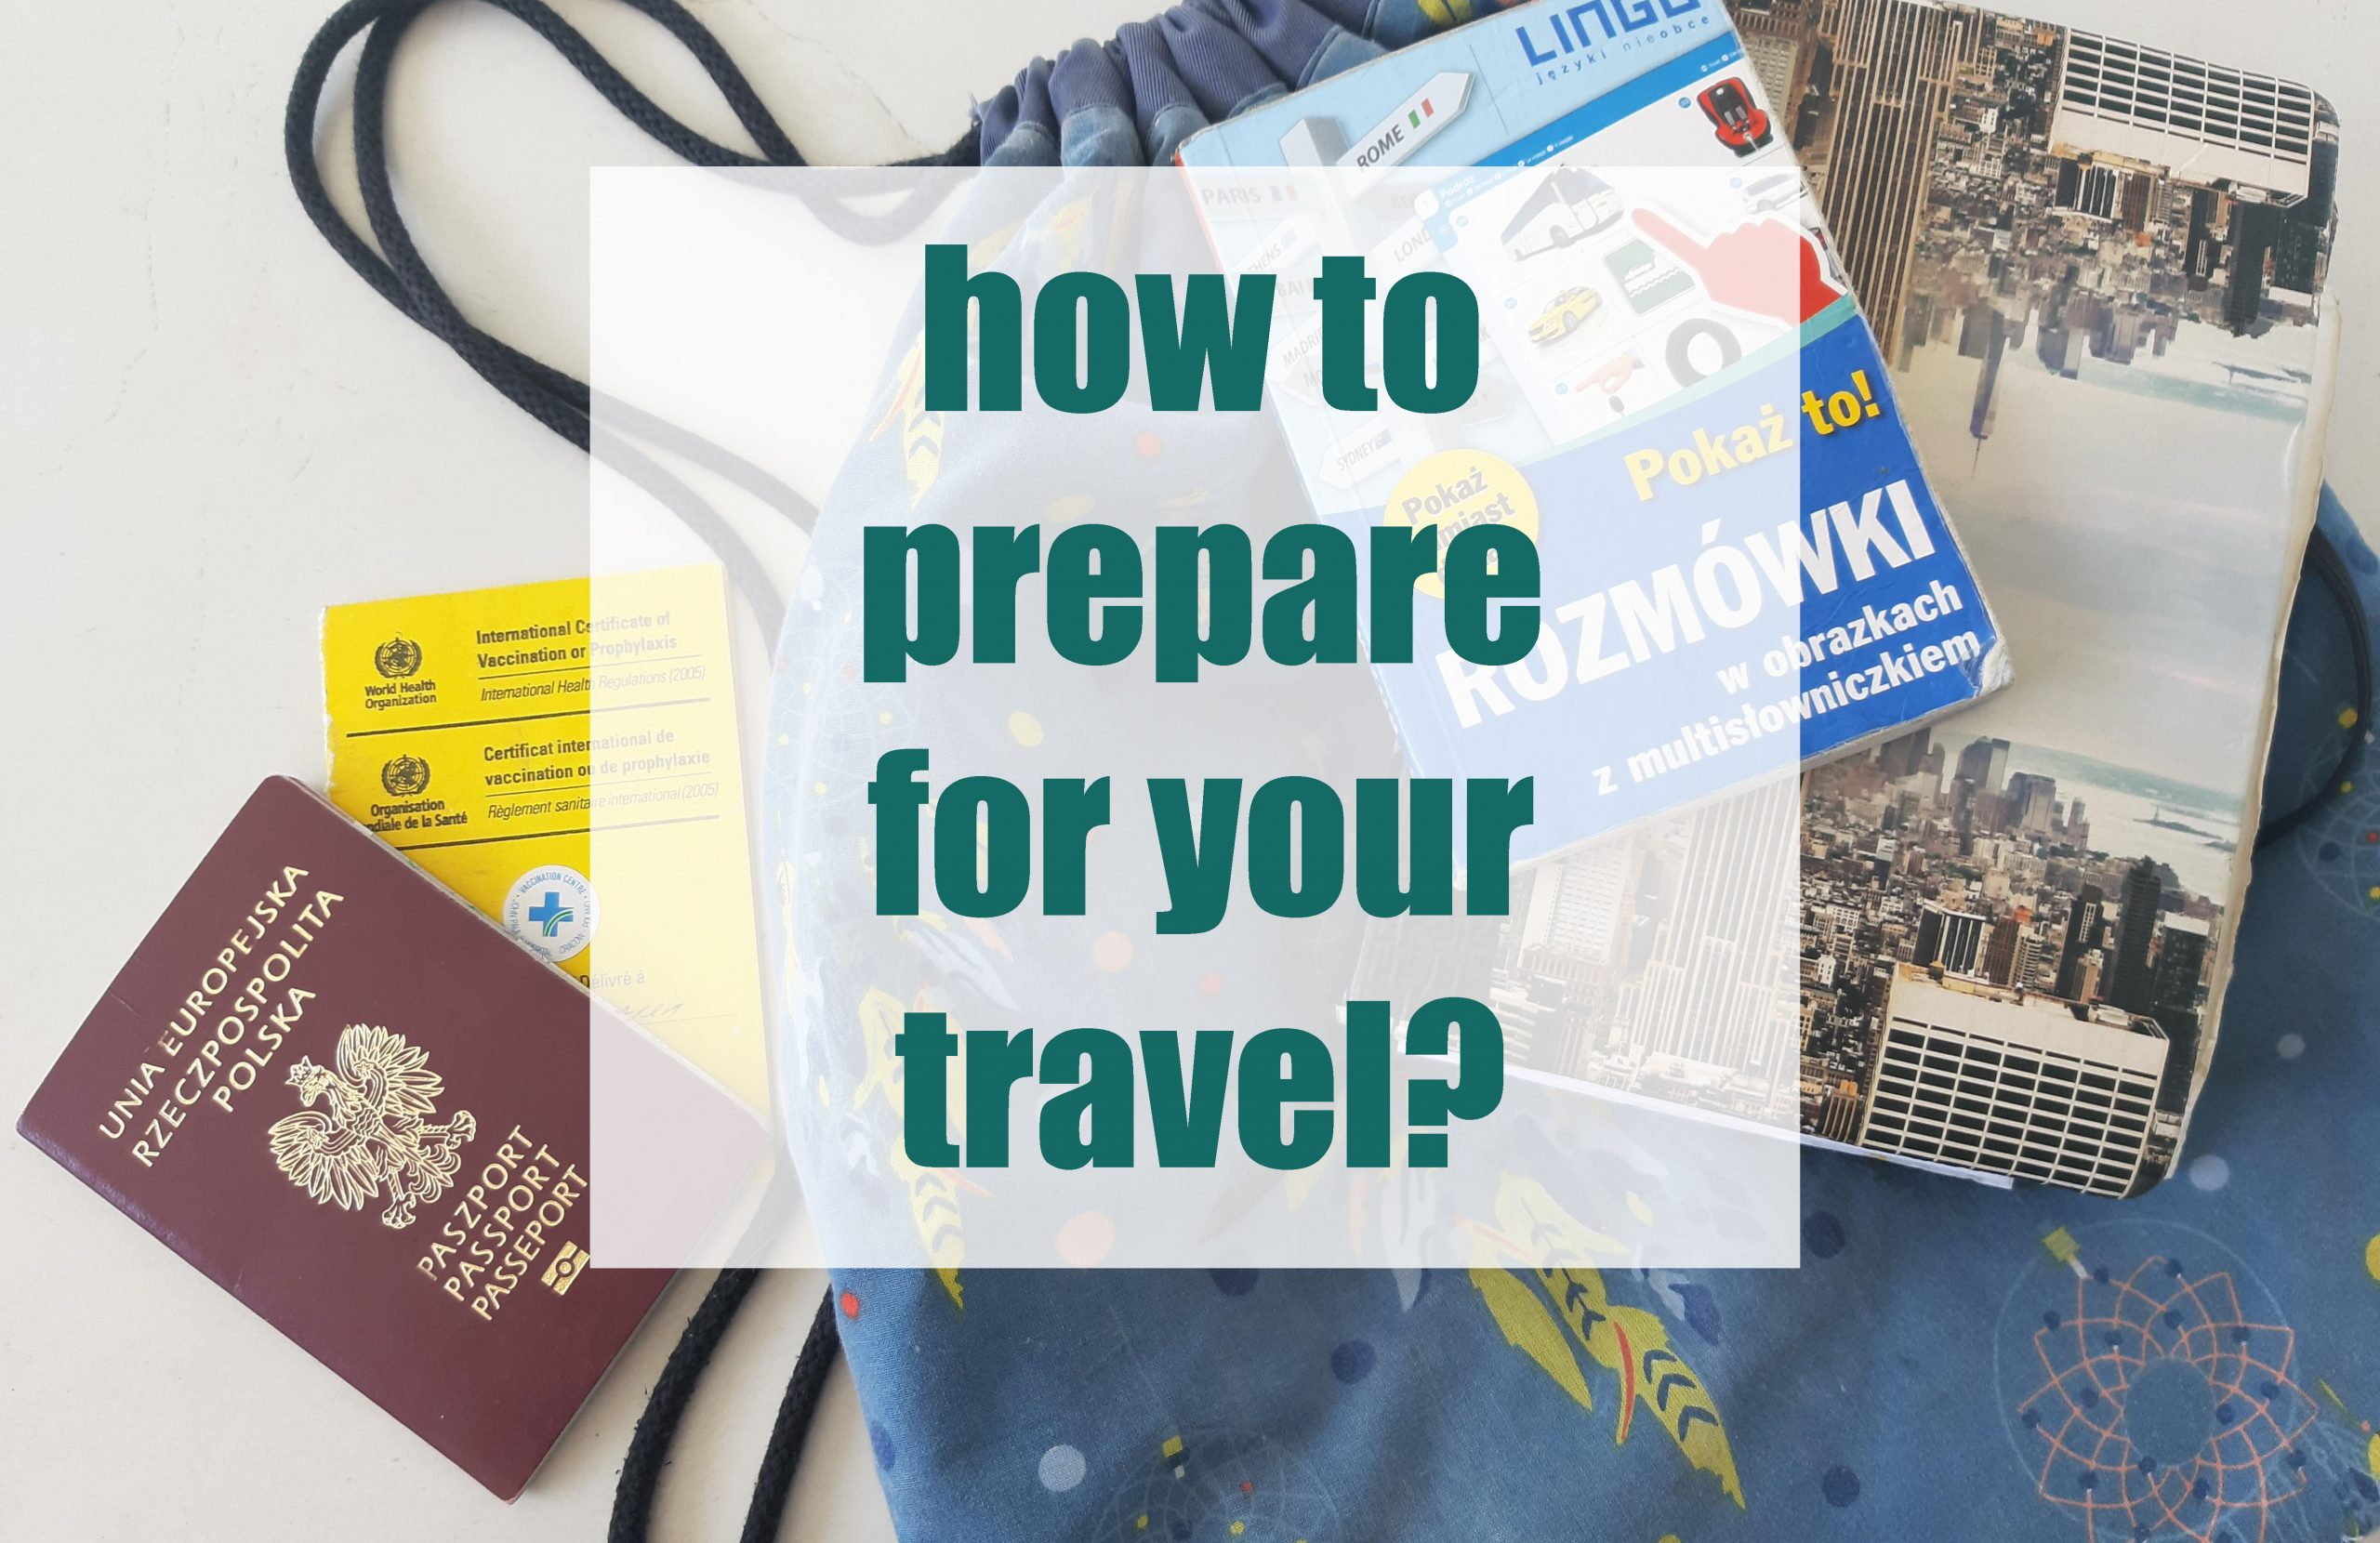 How to prepare for your travel?